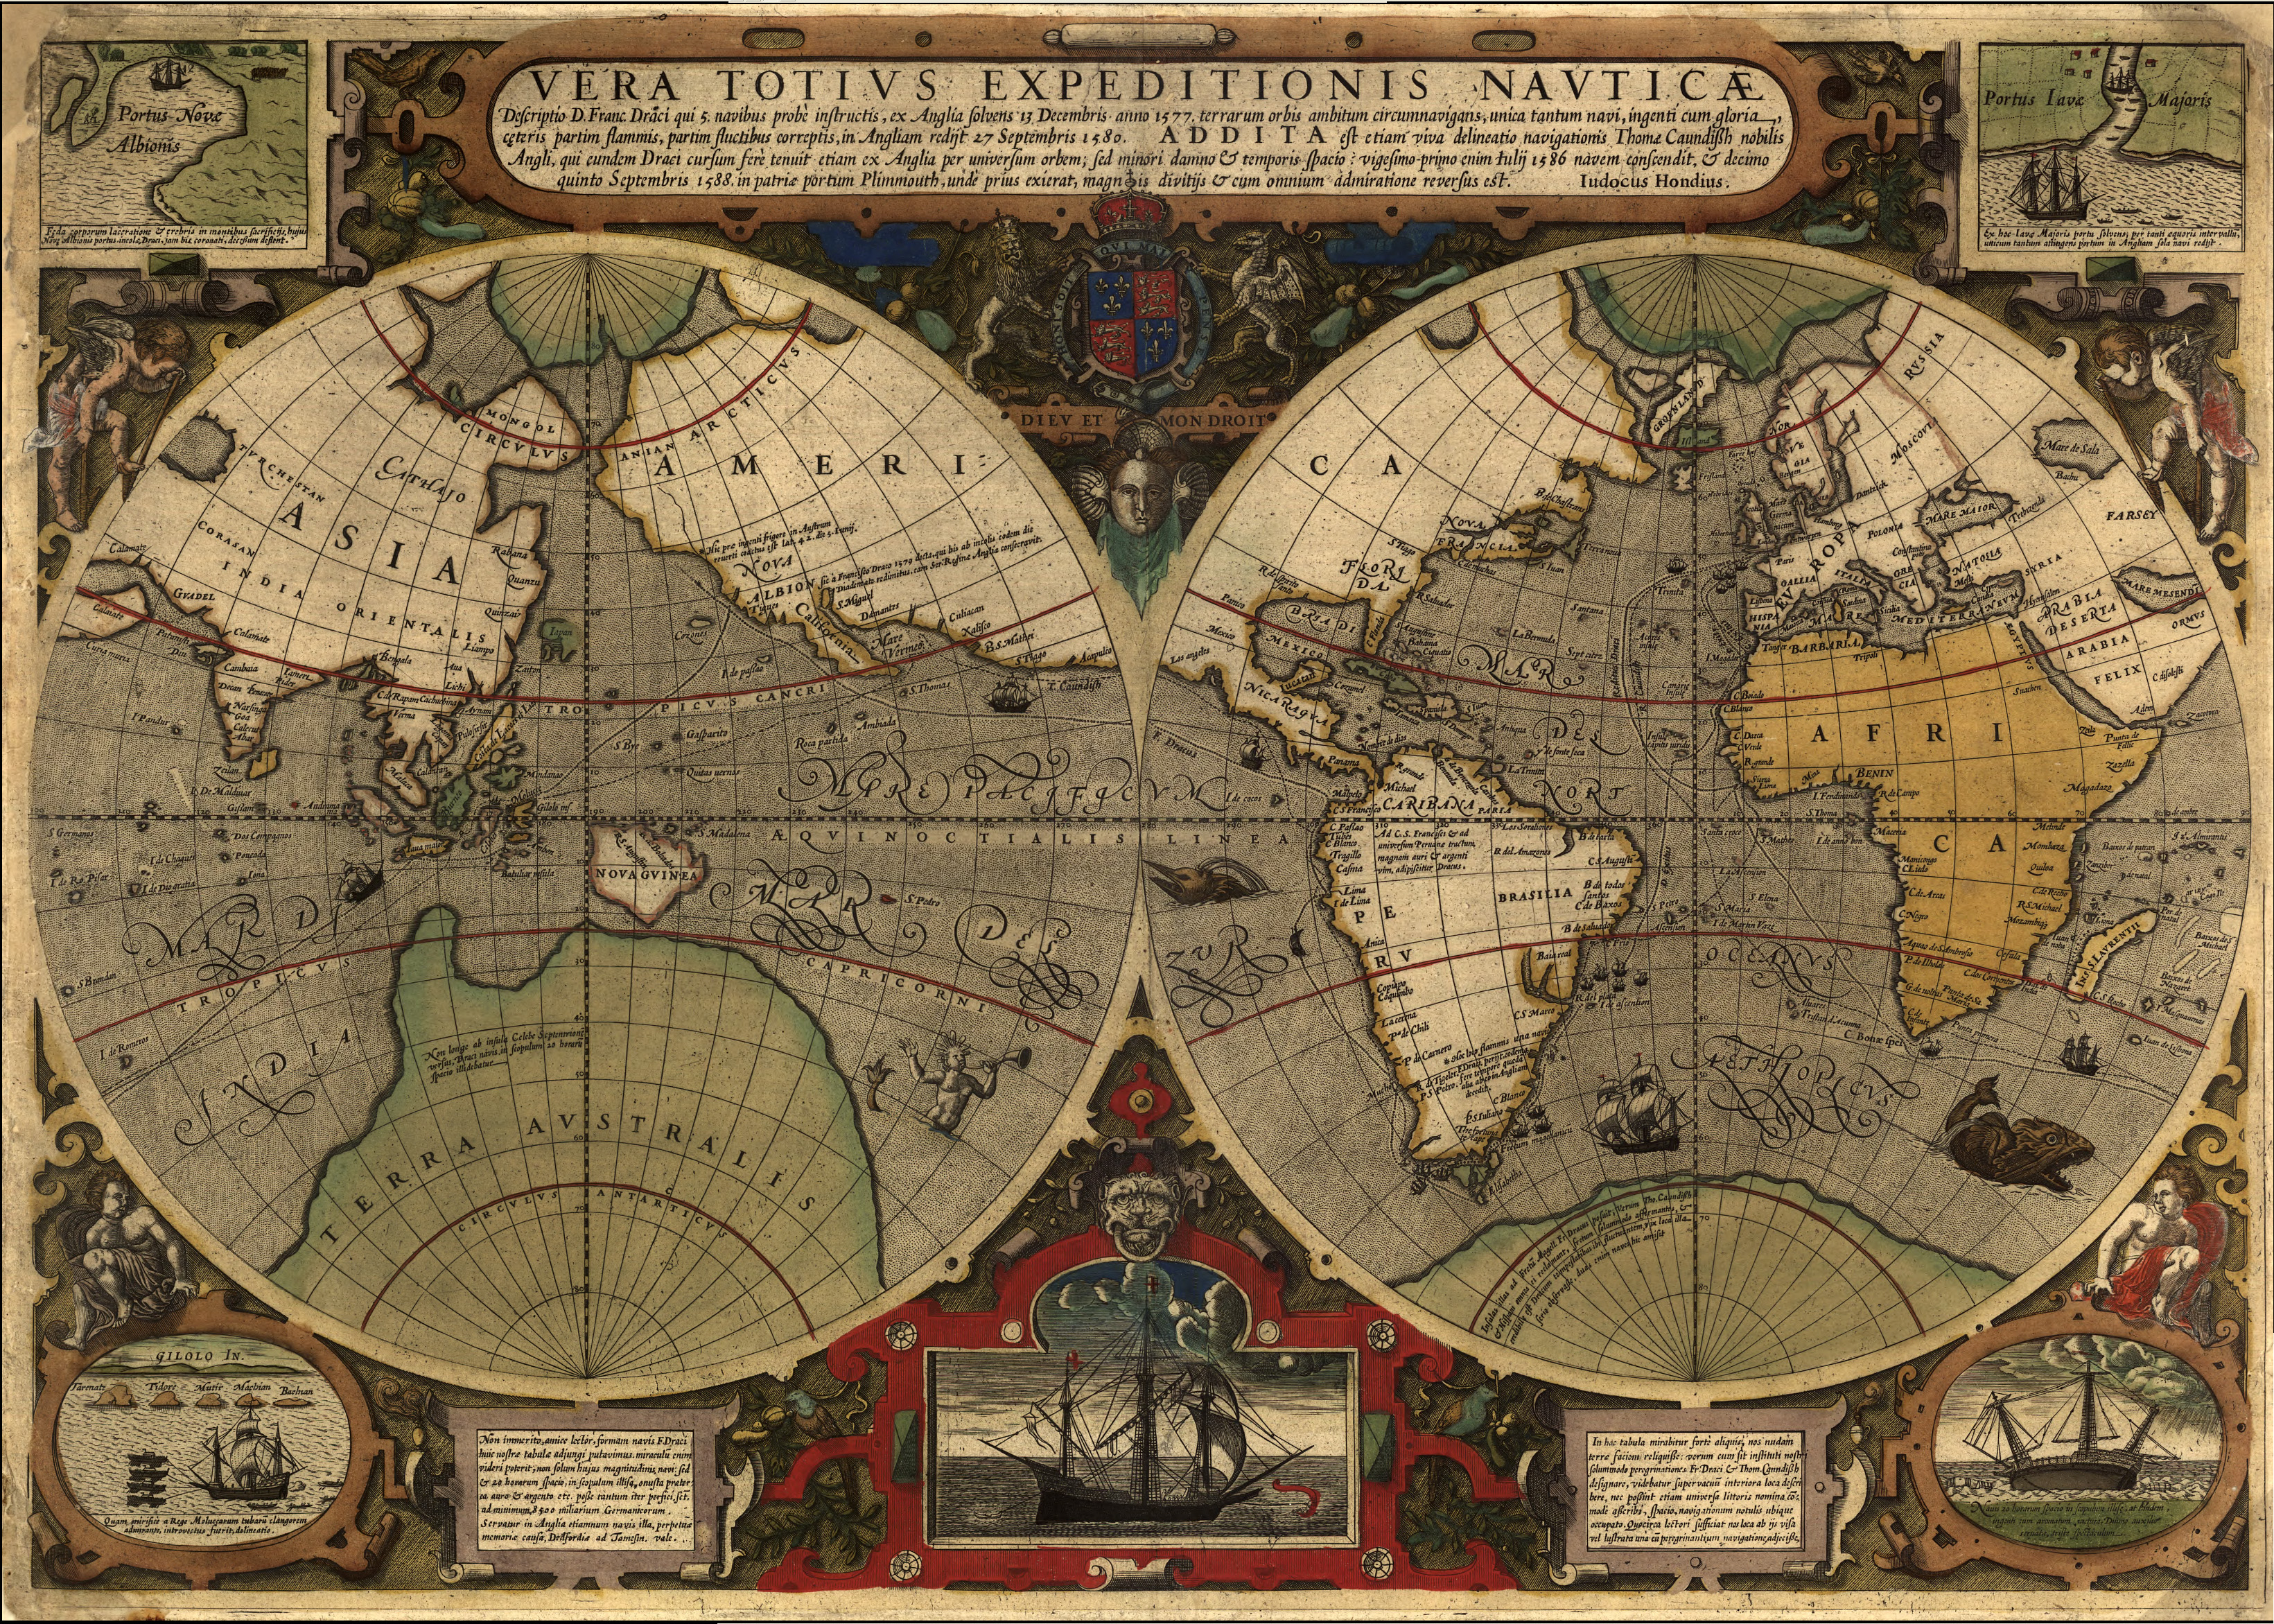 Maps time and world history intro video world history vera totius expeditionis nautic map 1565 what is world history video gumiabroncs Image collections